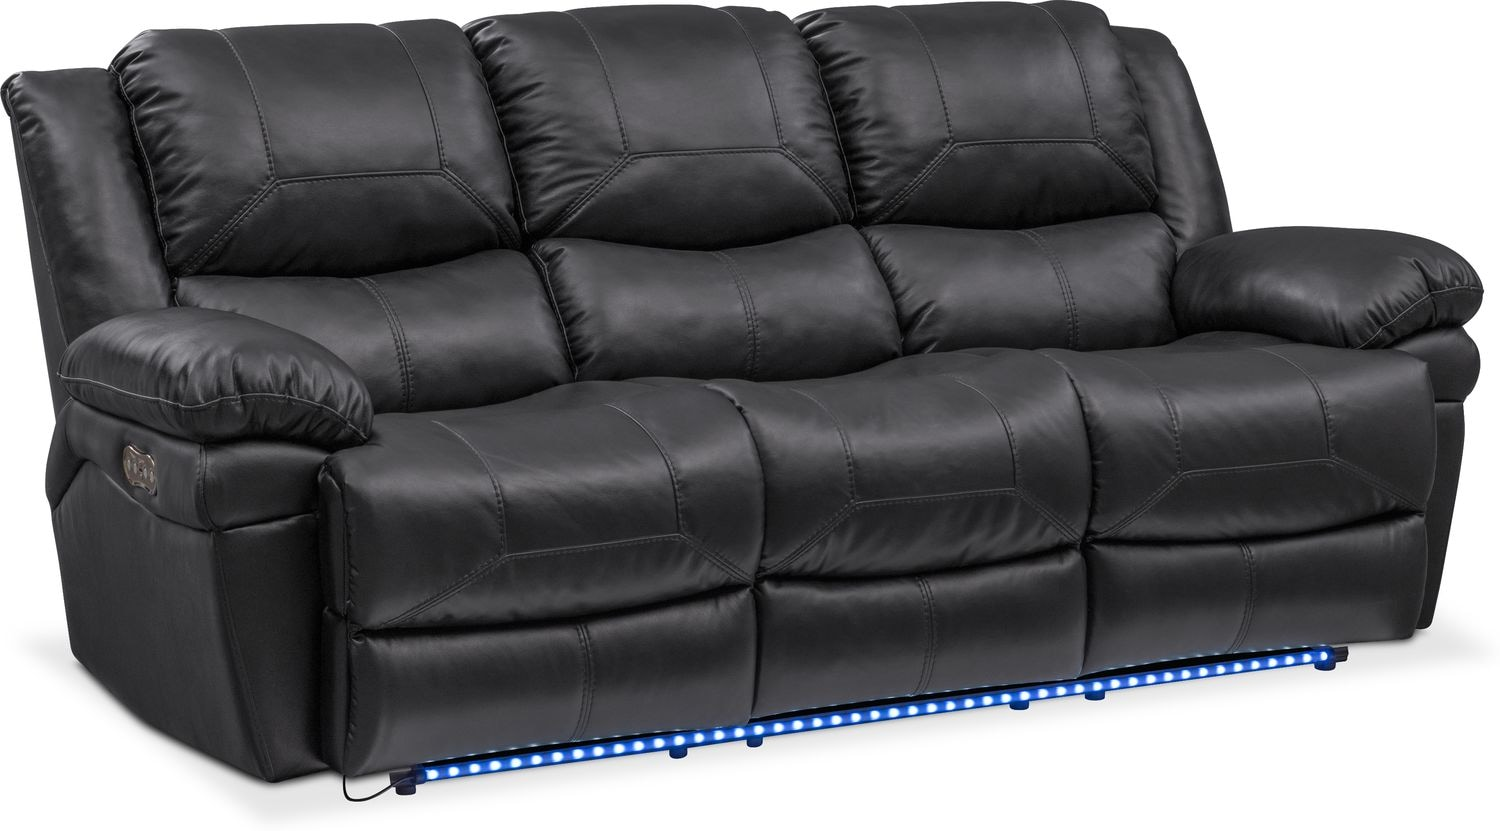 Living Room Furniture   Monza Dual Power Reclining Sofa   Black